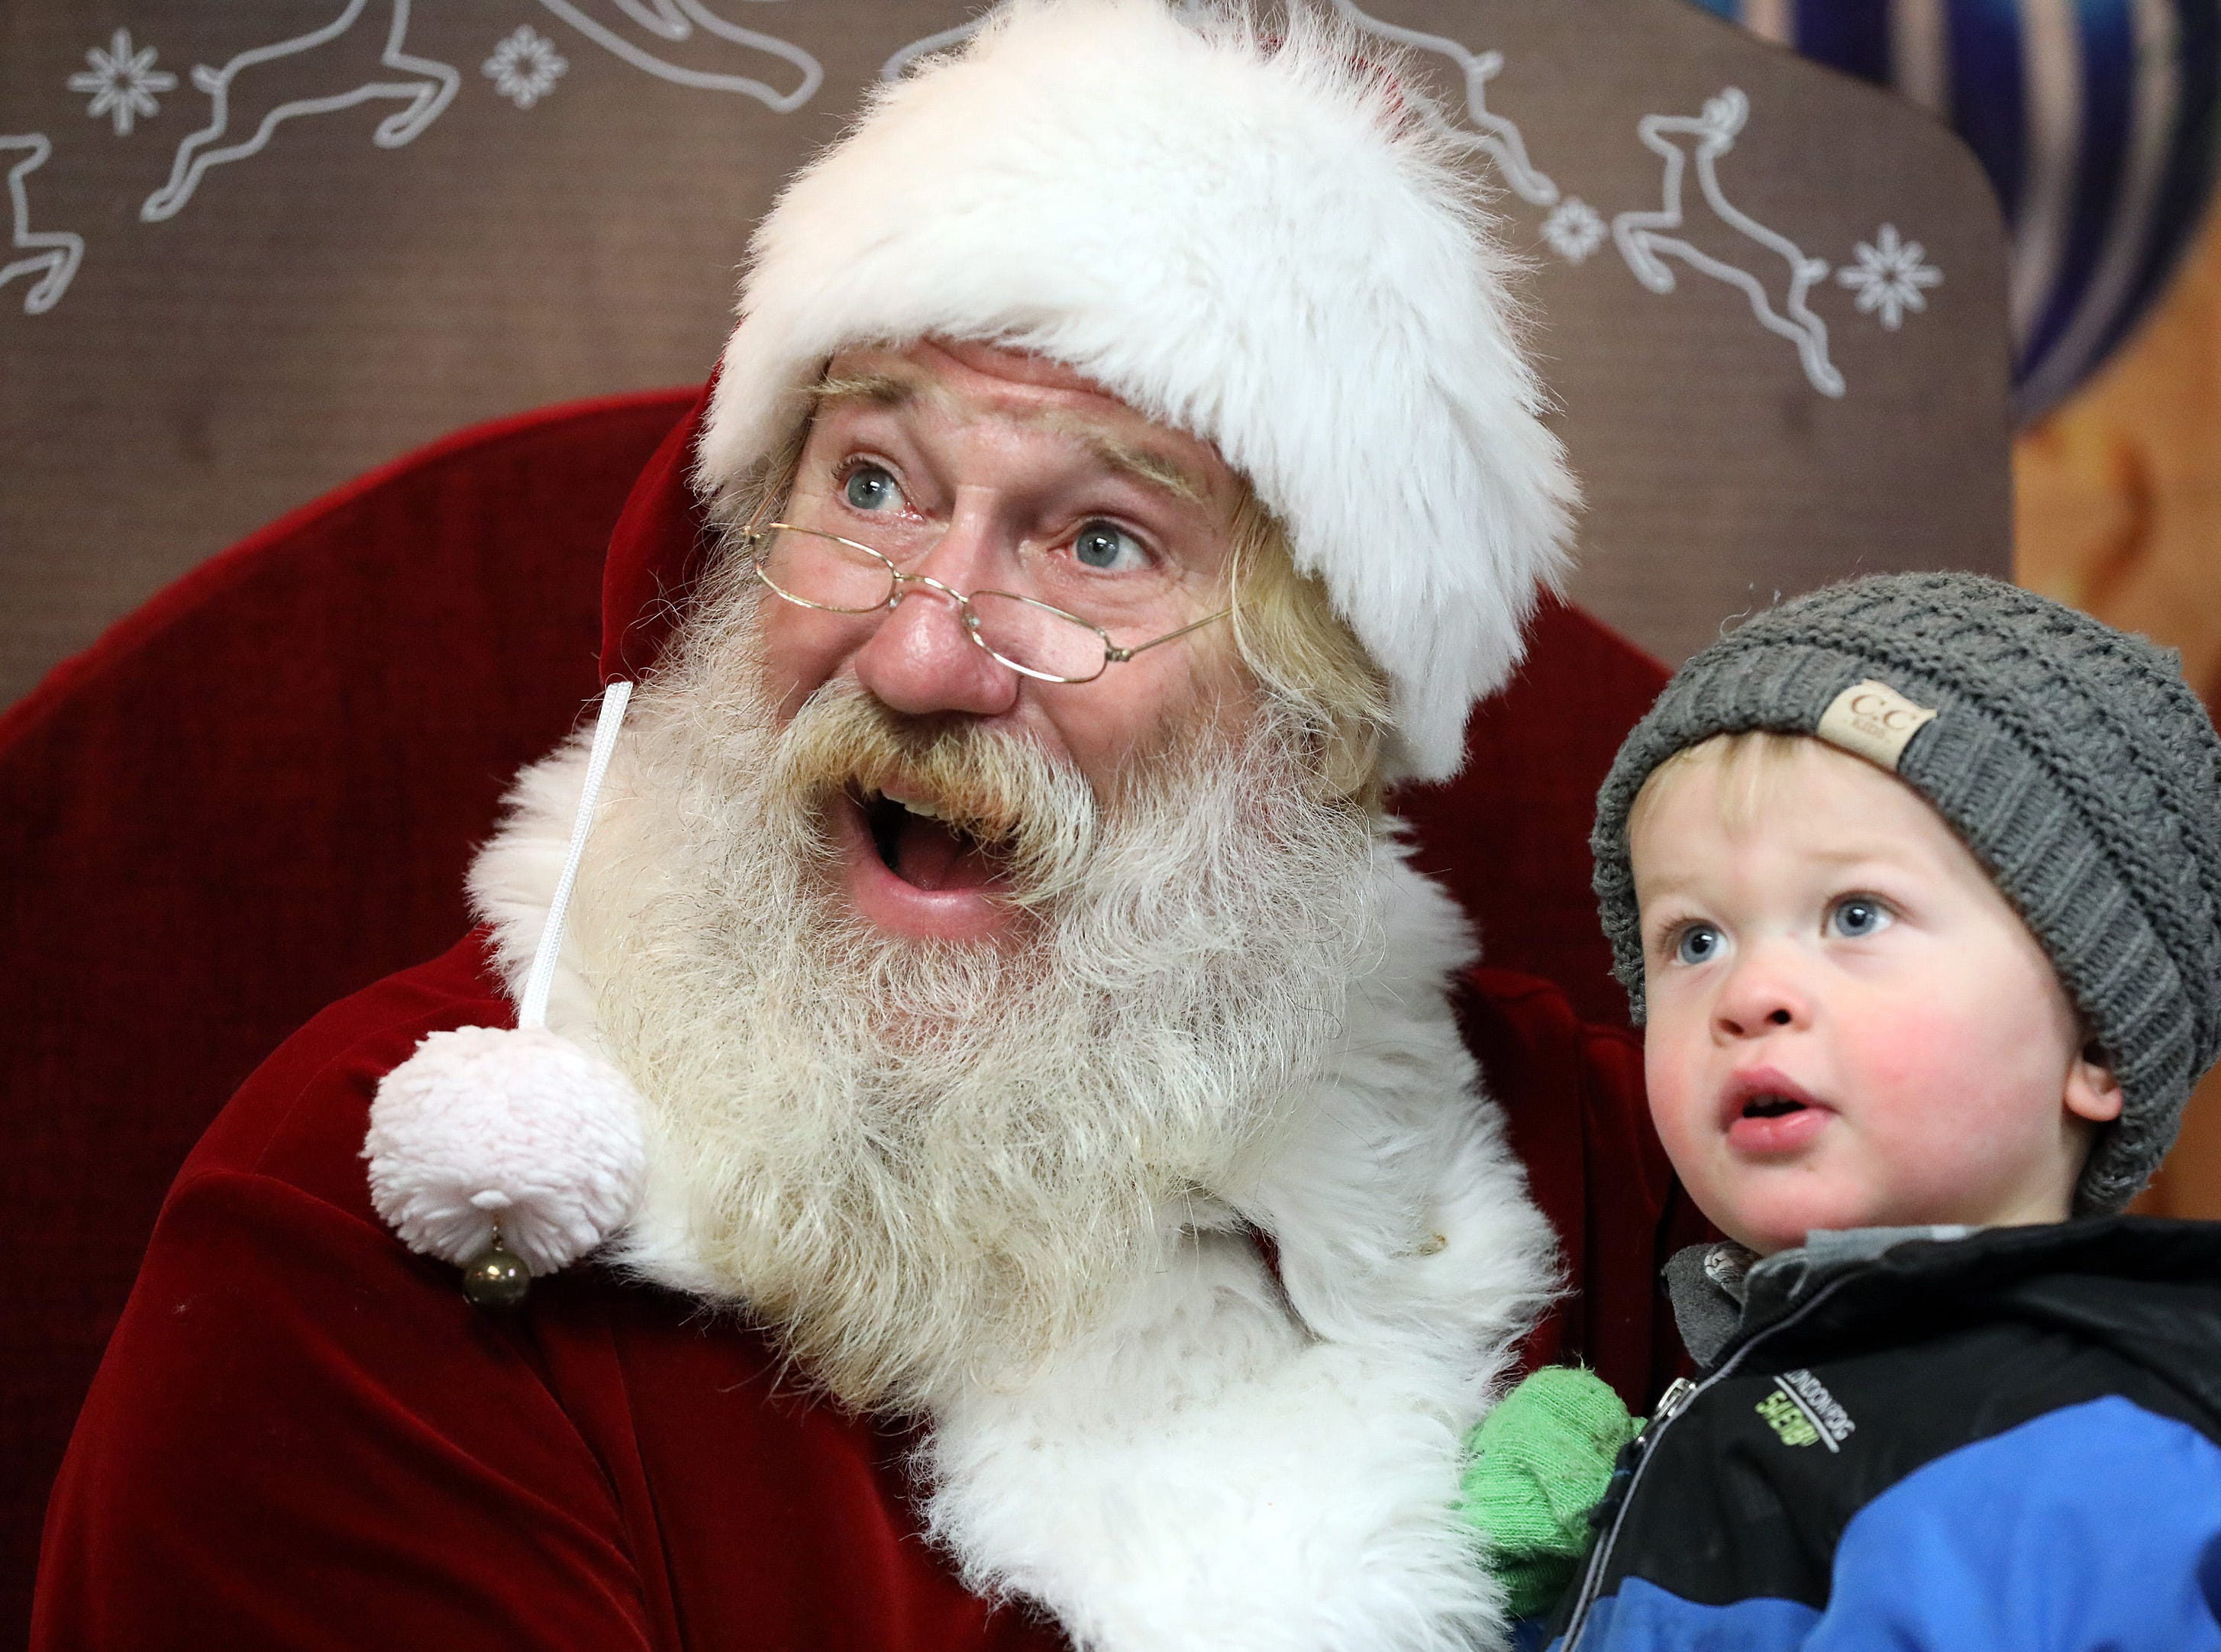 Santa and Charlie McPherren, 2, of Van Meter smile as his parent takes a picture during UCAN's third annual Light Up Urbandale on Sunday, Dec. 2, 2018 at Lions Park in Urbandale. Holiday festivities included a visit from Santa, crafts, goodies, official tree lighting ceremony, live reindeer and entertainment. This event helps raise awareness and support for the Urbandale Community Action Network Holiday Helping Hands Programs for families, kids, teens and seniors in need.